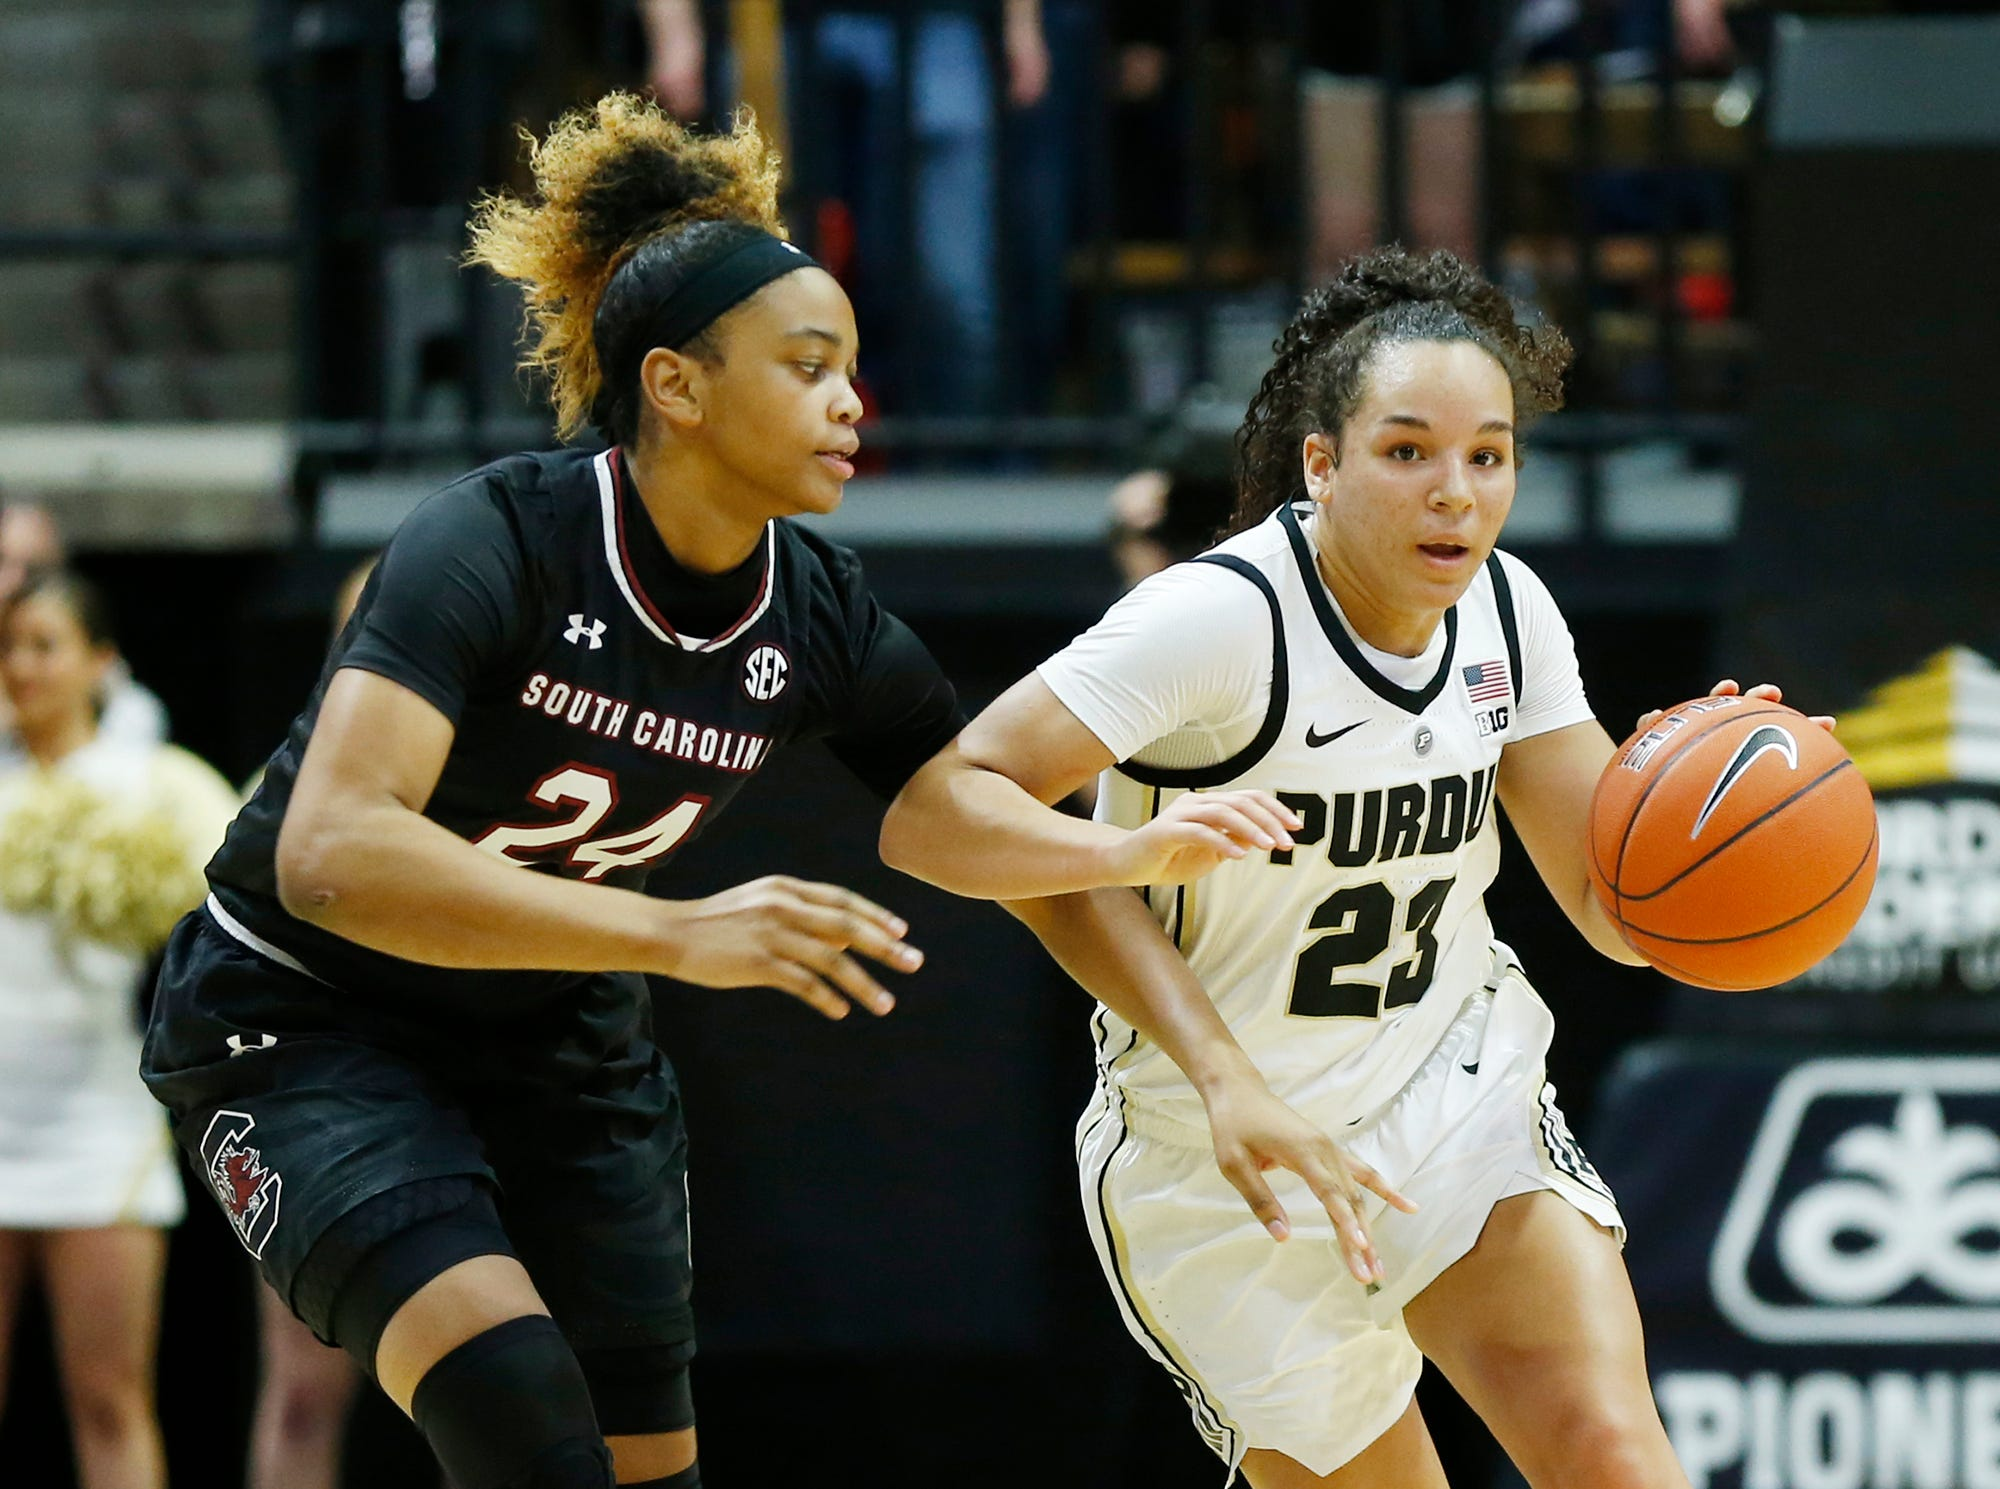 Purdue guard Kayana Traylor is chased by South Carolina's LeLe Grissett.